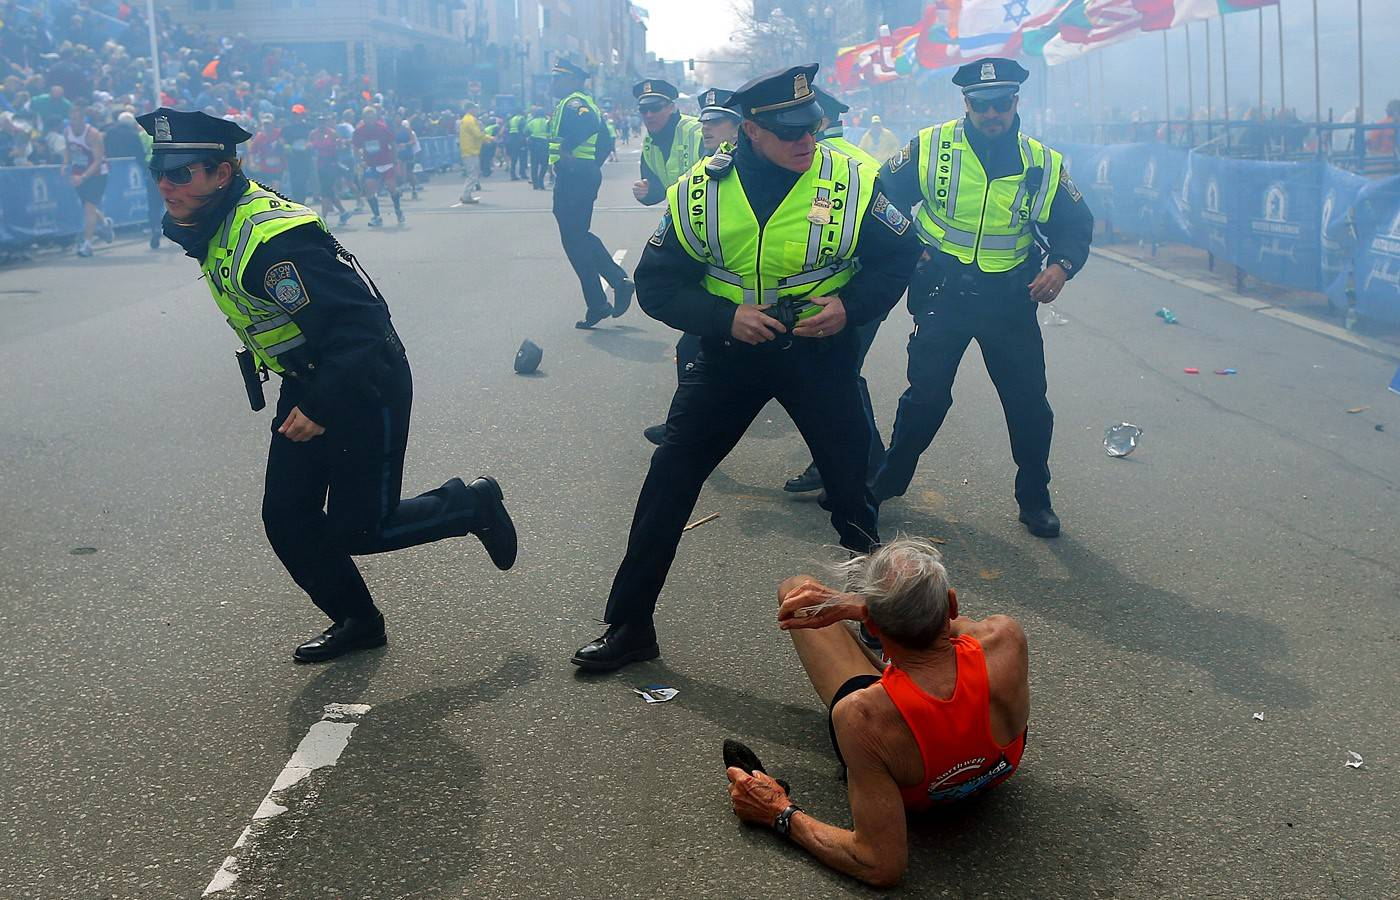 Bill Iffrig, 78, lies on the ground as police officers react to a second explosion at the finish line of the Boston Marathon in Boston. Iffrig, of Lake Stevens, Wash., was running his third Boston Marathon and near the finish line when he was knocked down by one of the two bomb blasts.